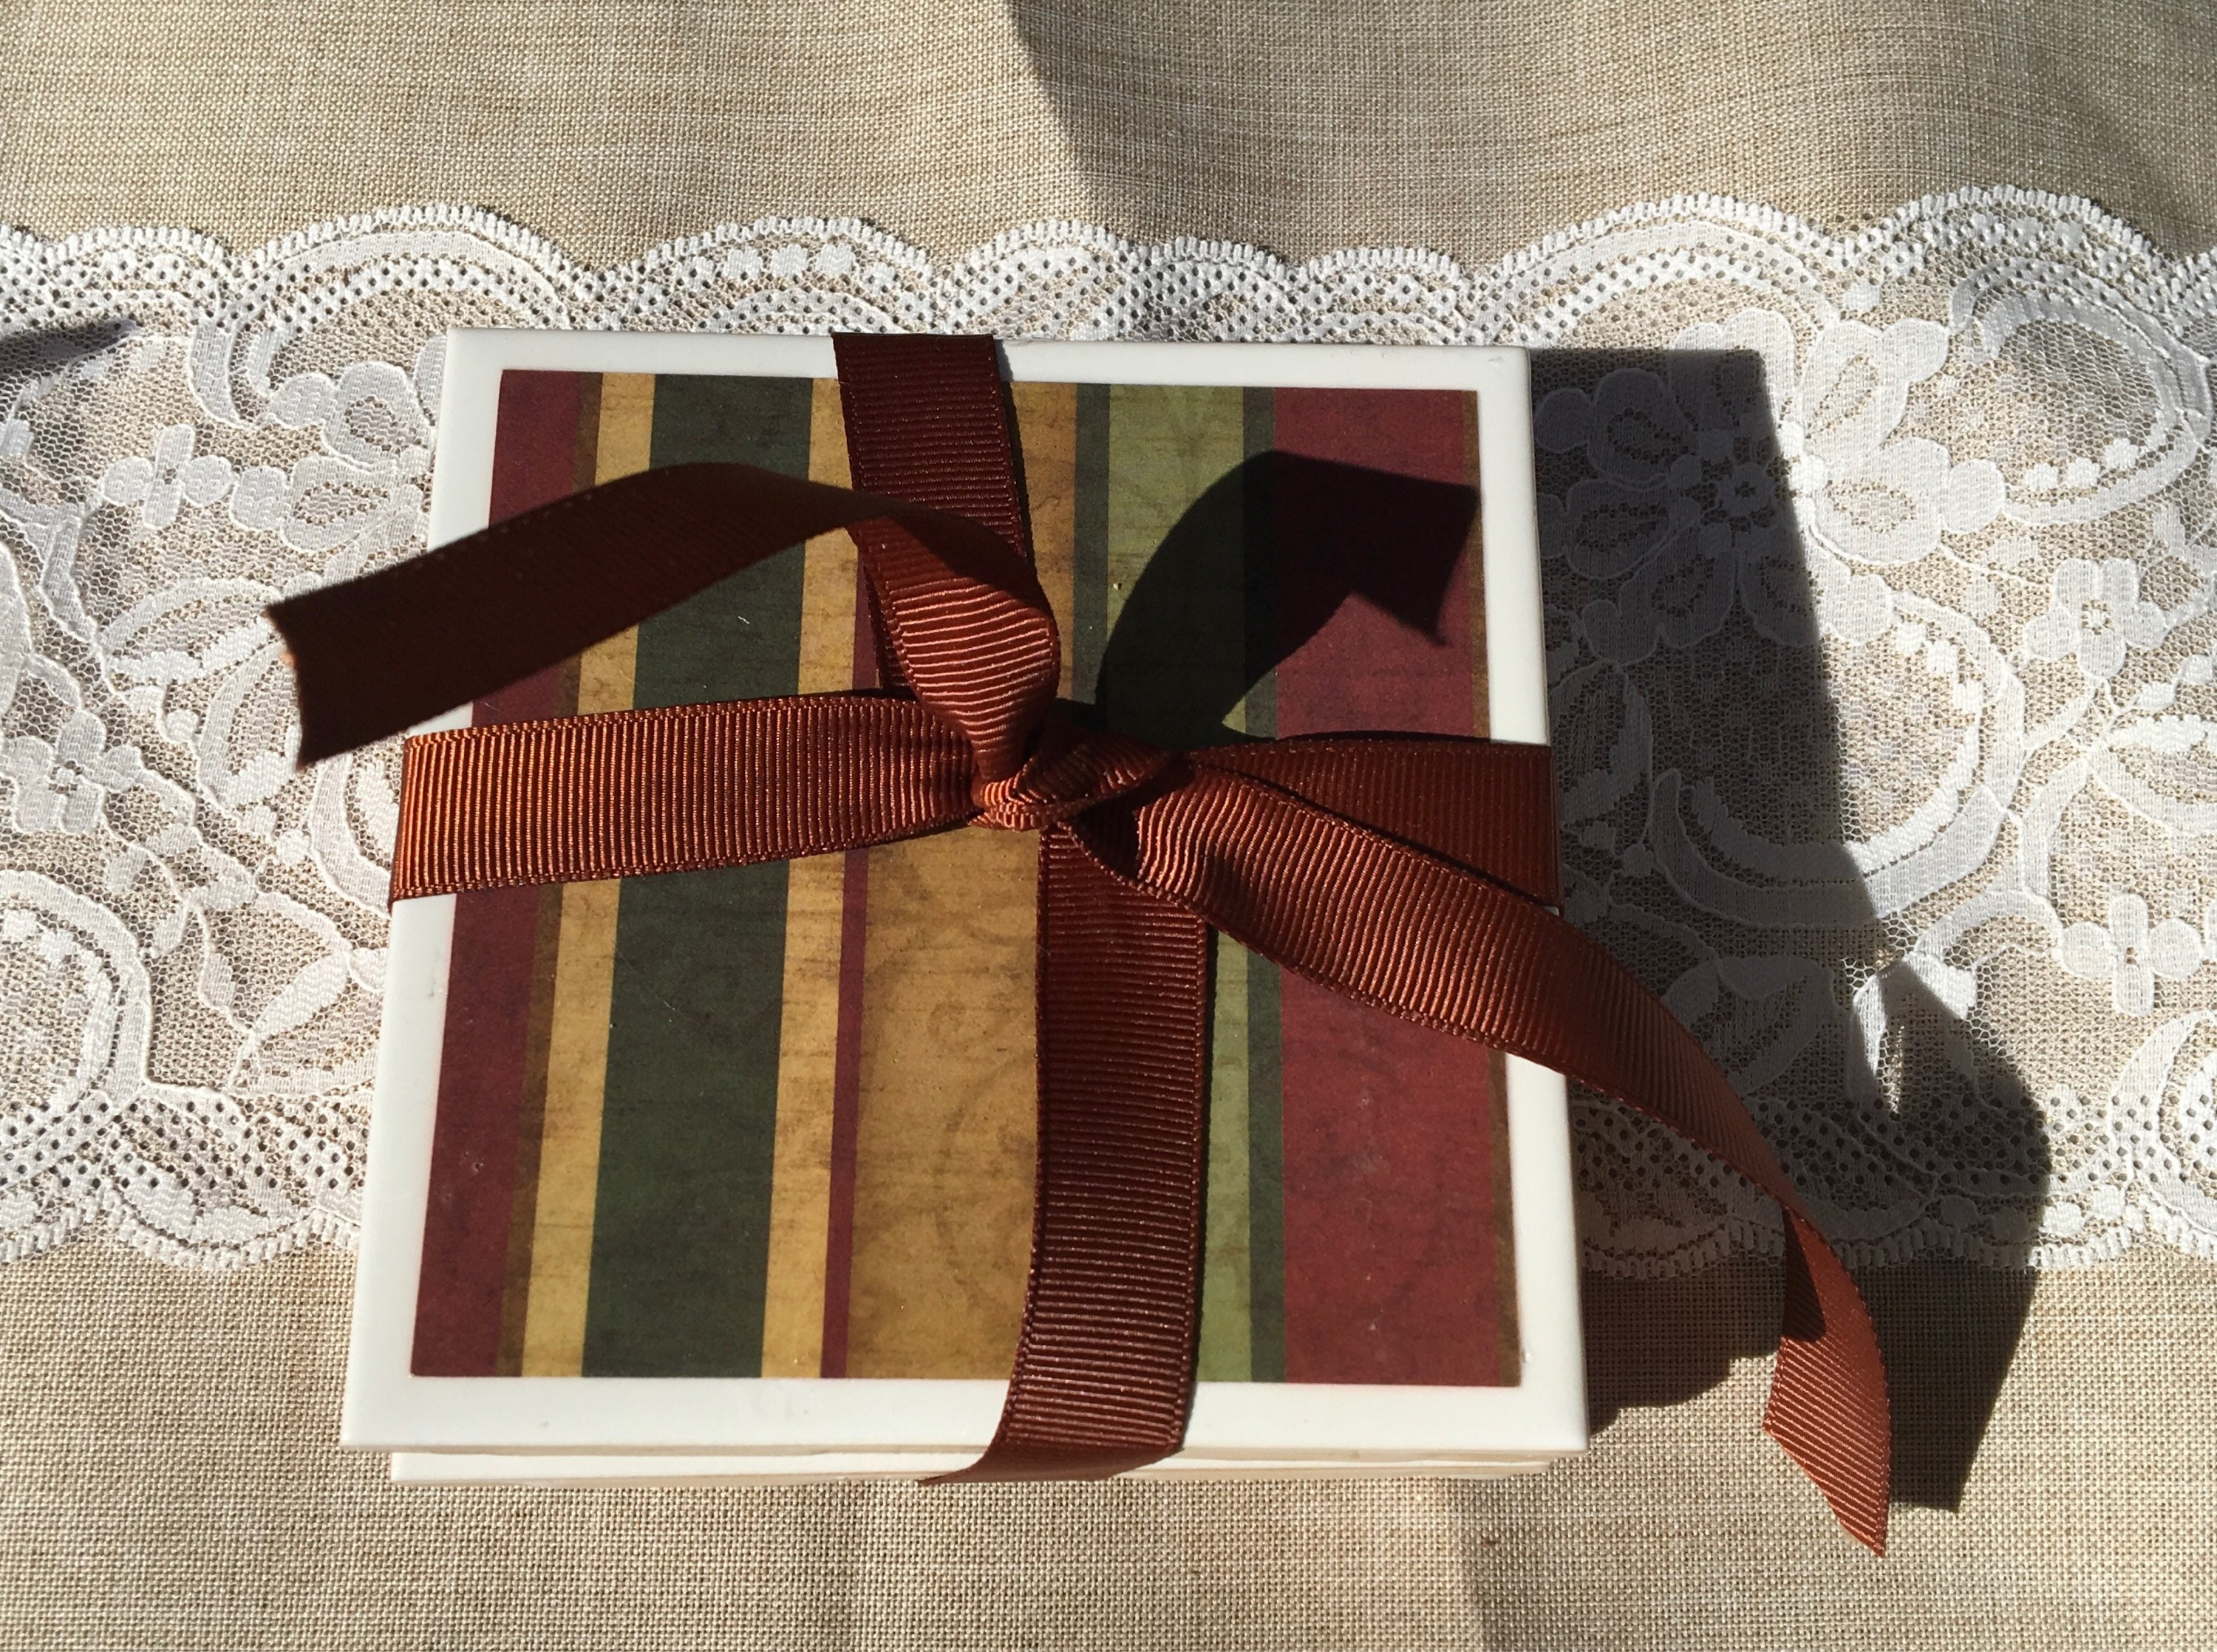 Brown Striped 4x4 Set Of 4 Ceramic Tile Coasters With Cork Backing